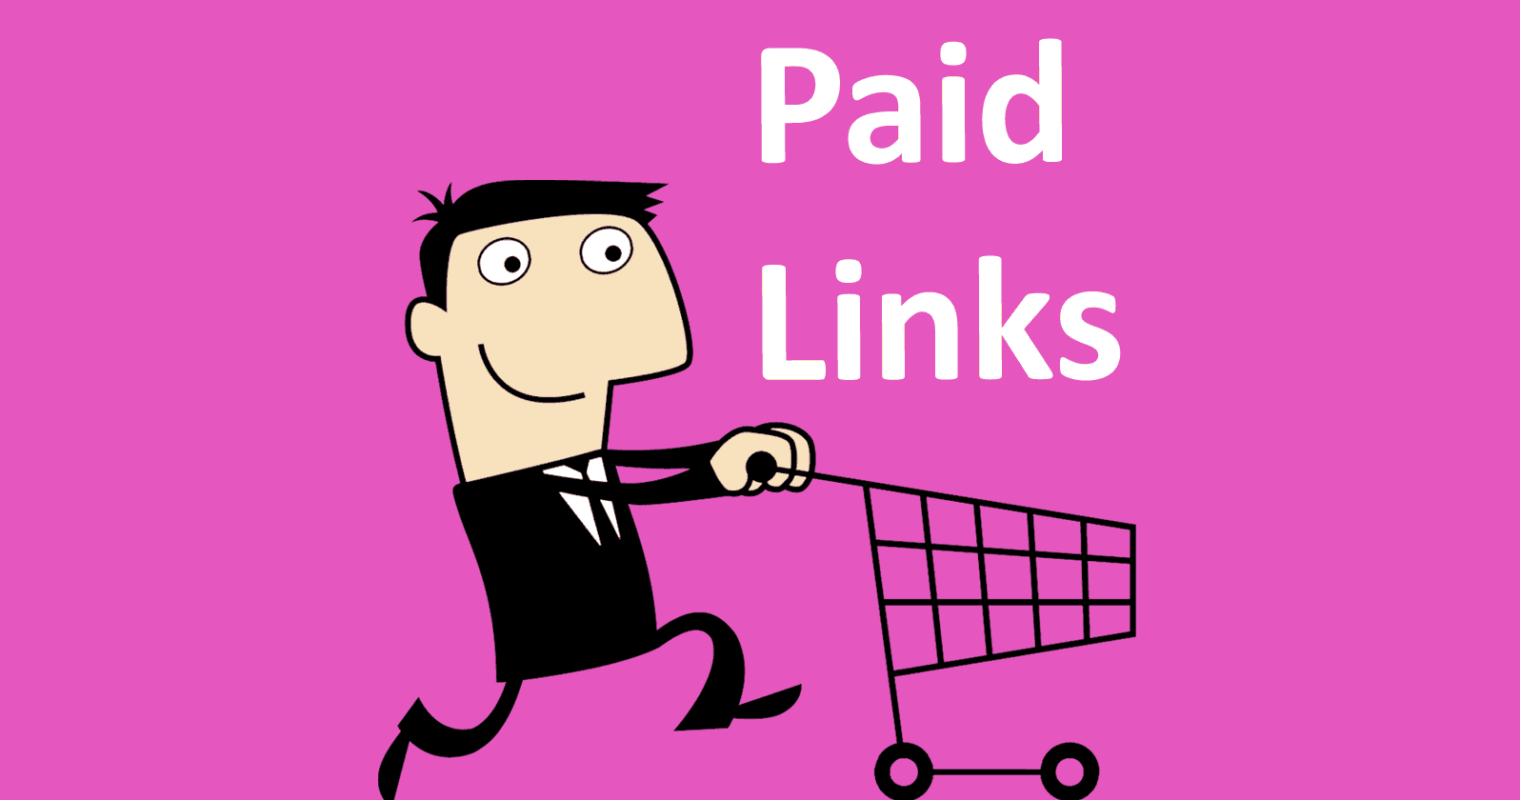 Google Says Paid Links Don't Work